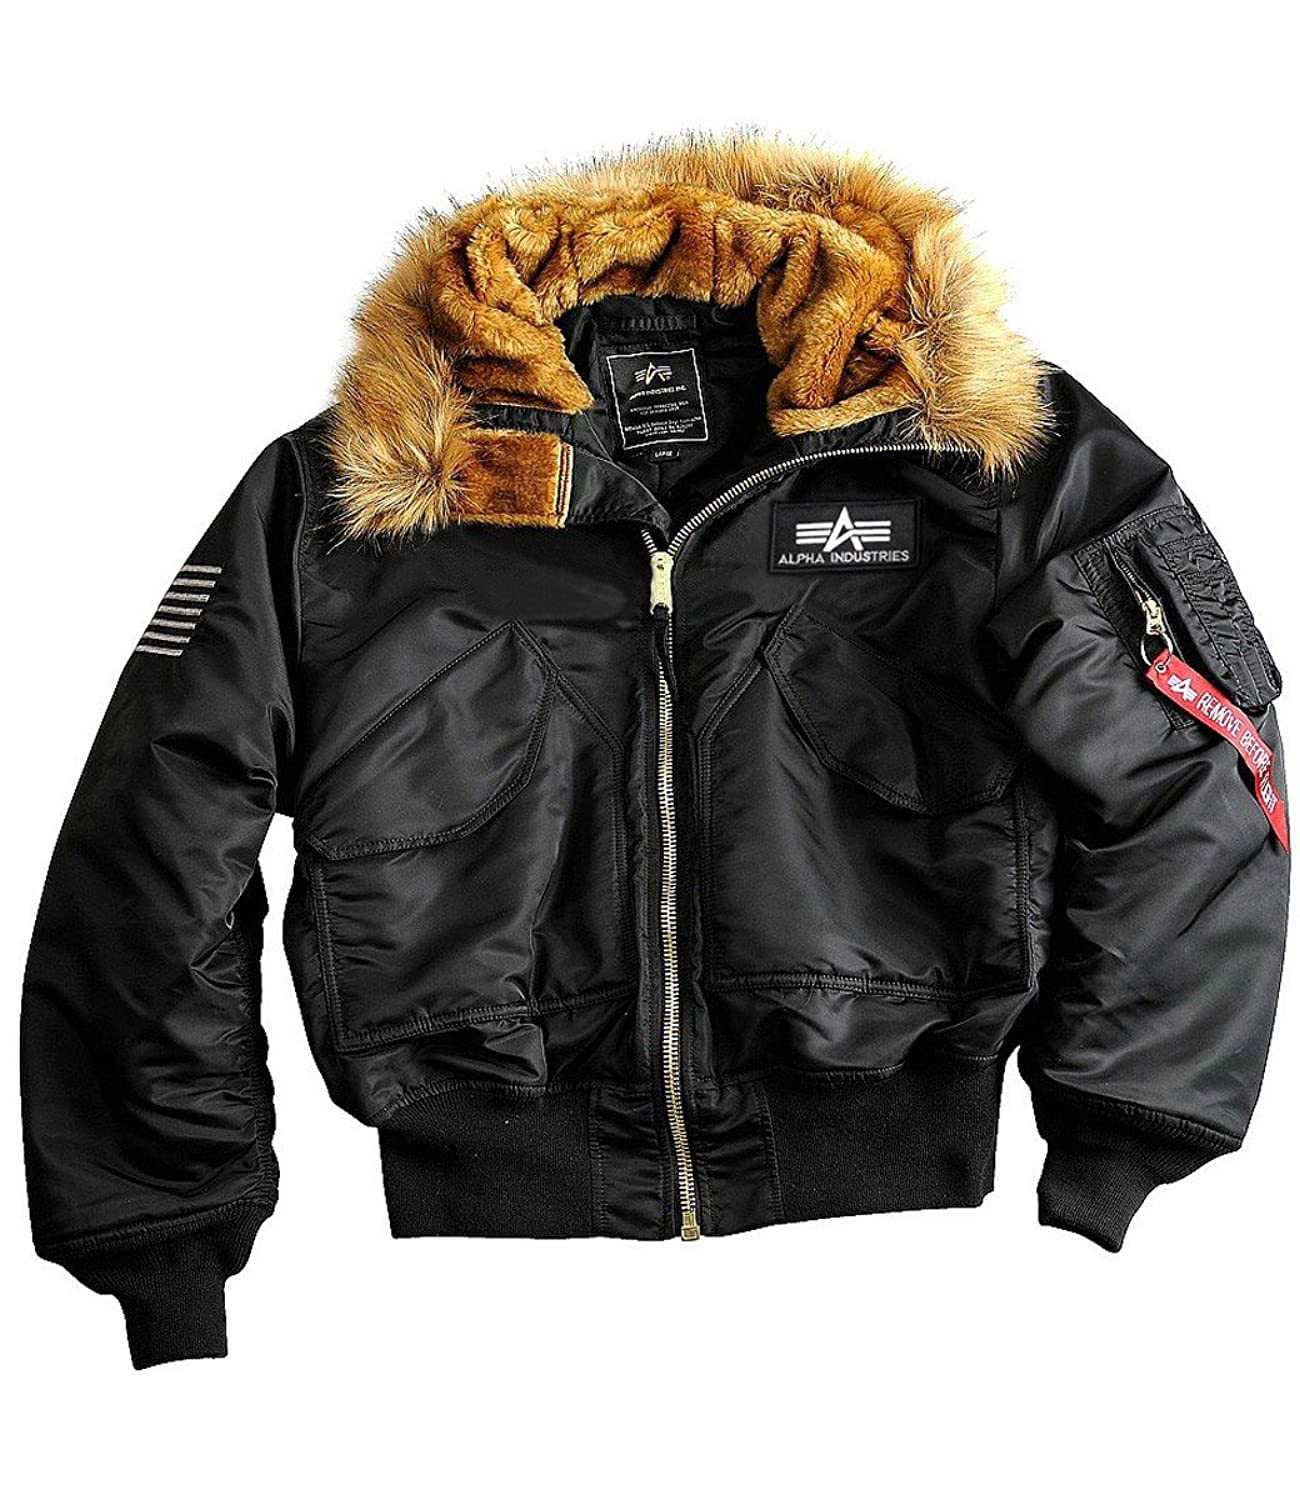 Alpha Industries Herren winterjacken online kaufen